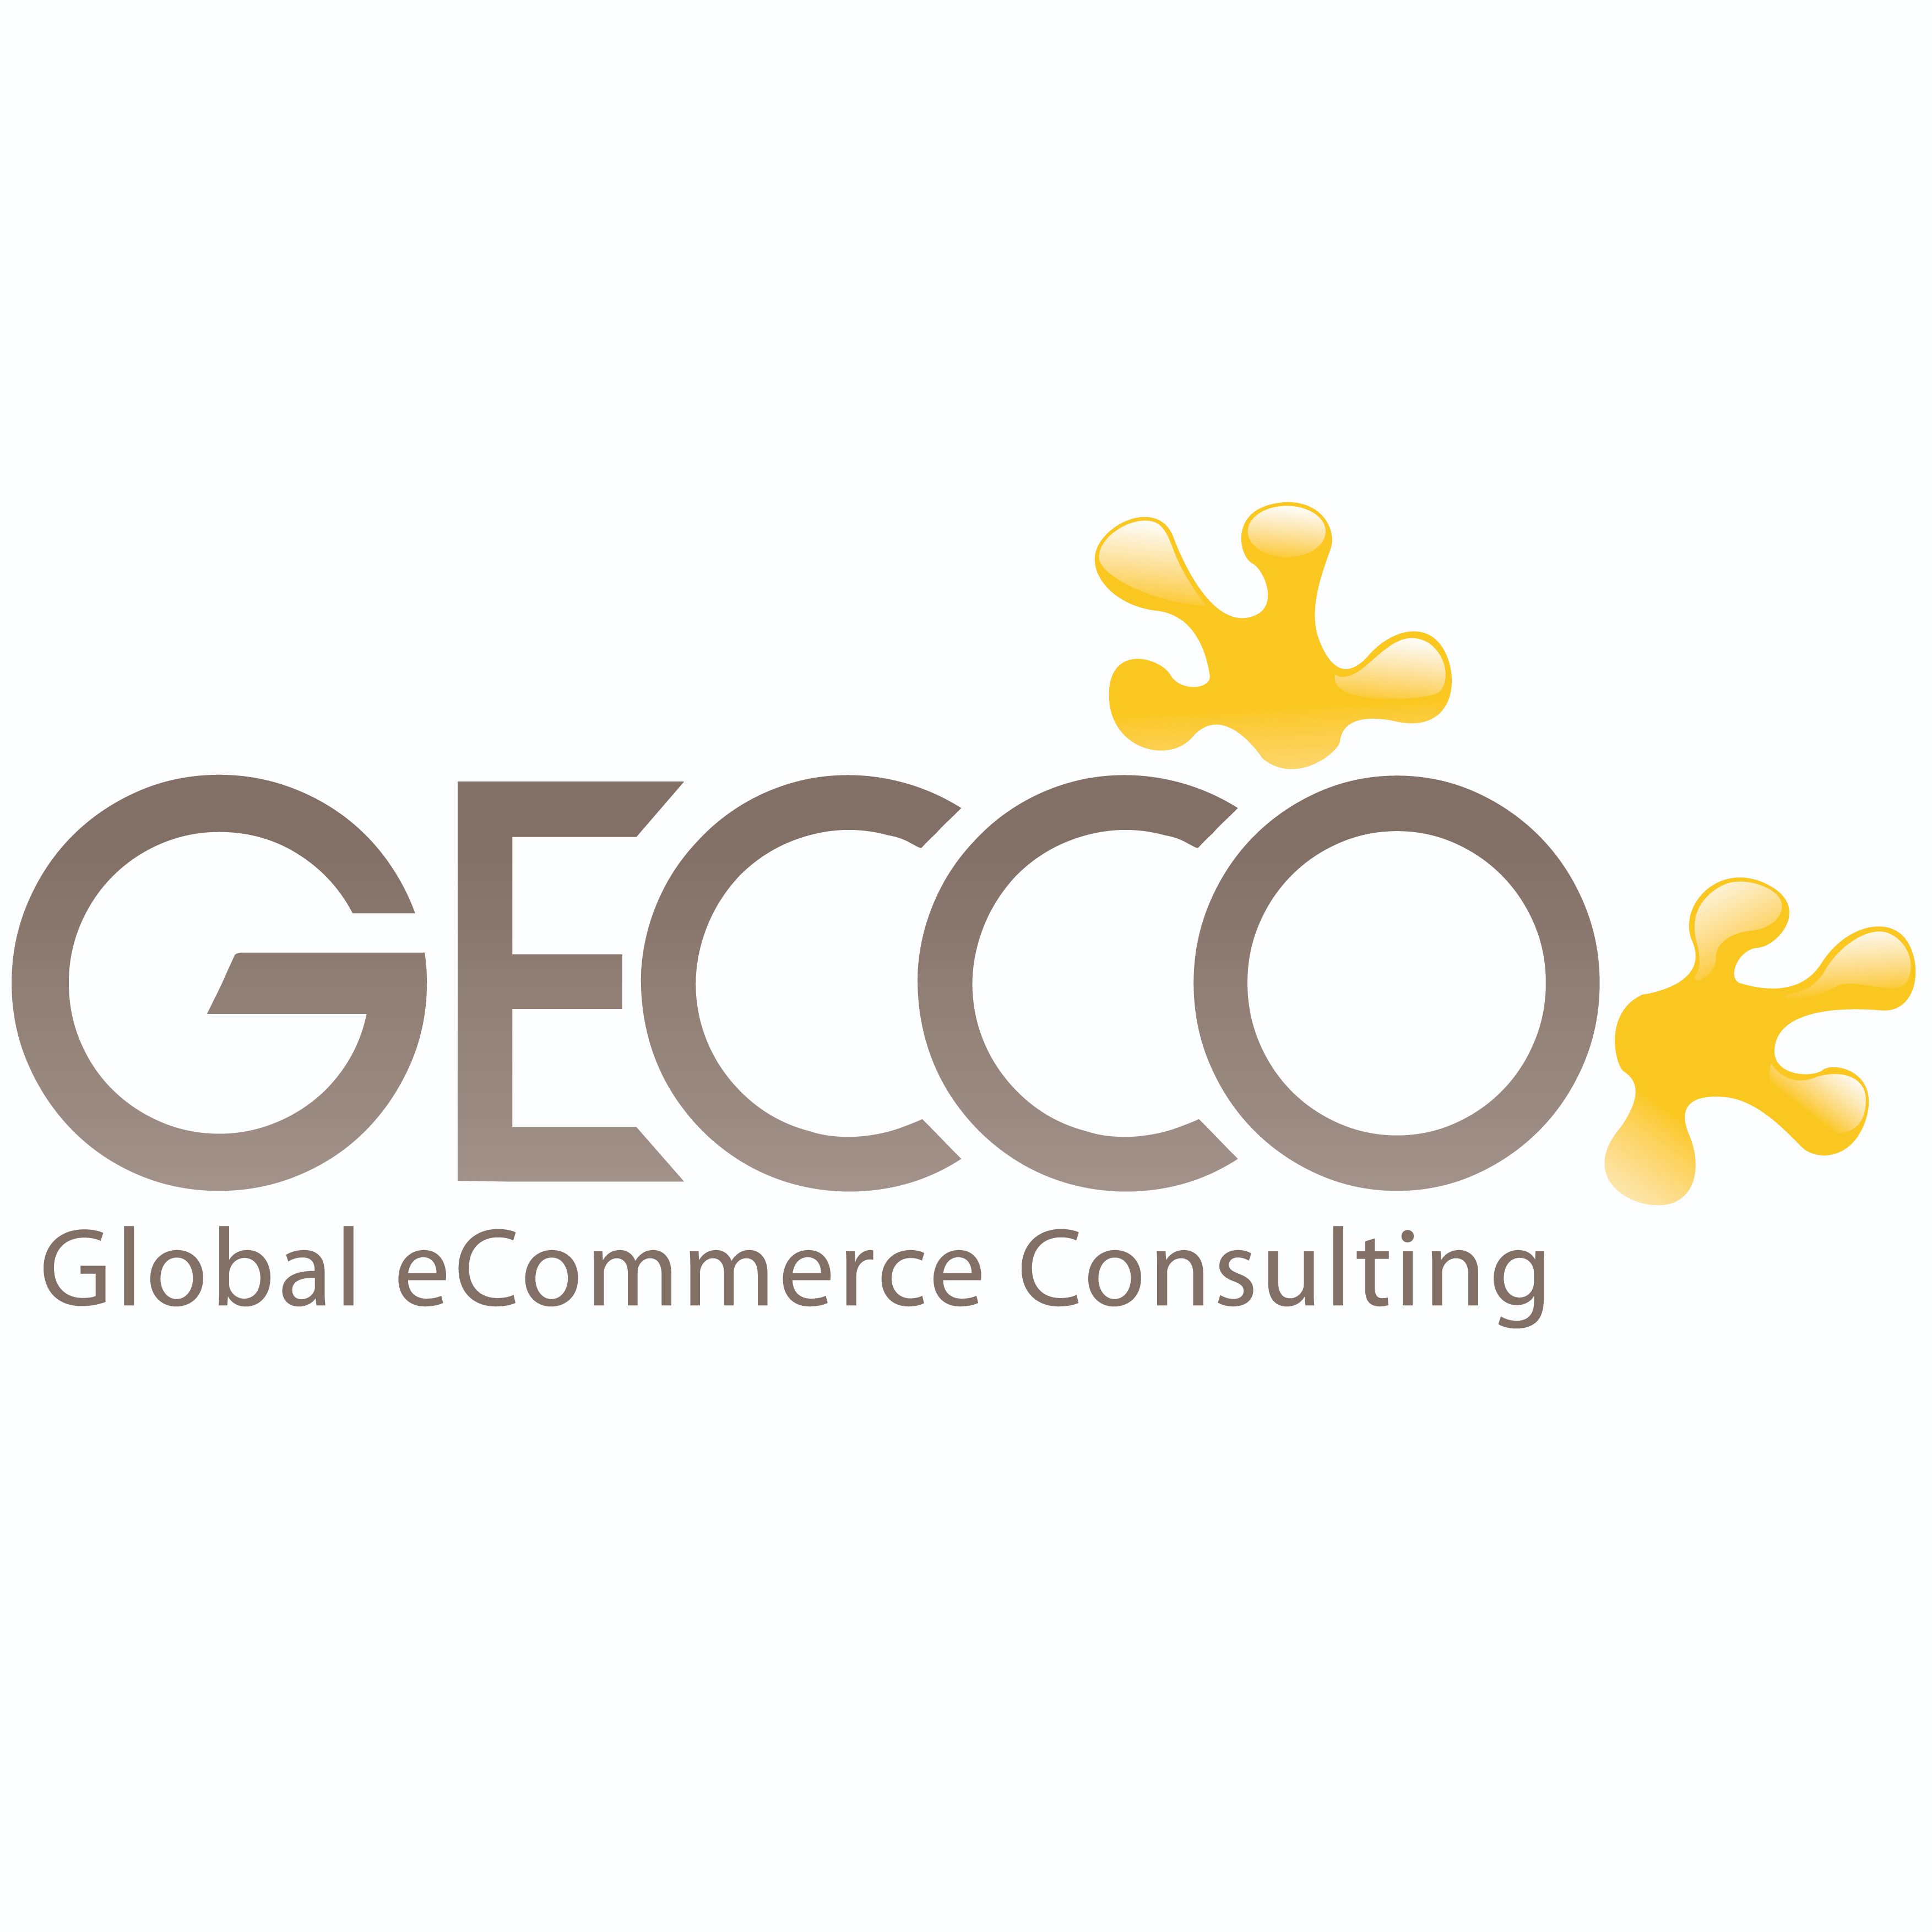 GECCO - Global eCommerce Consulting